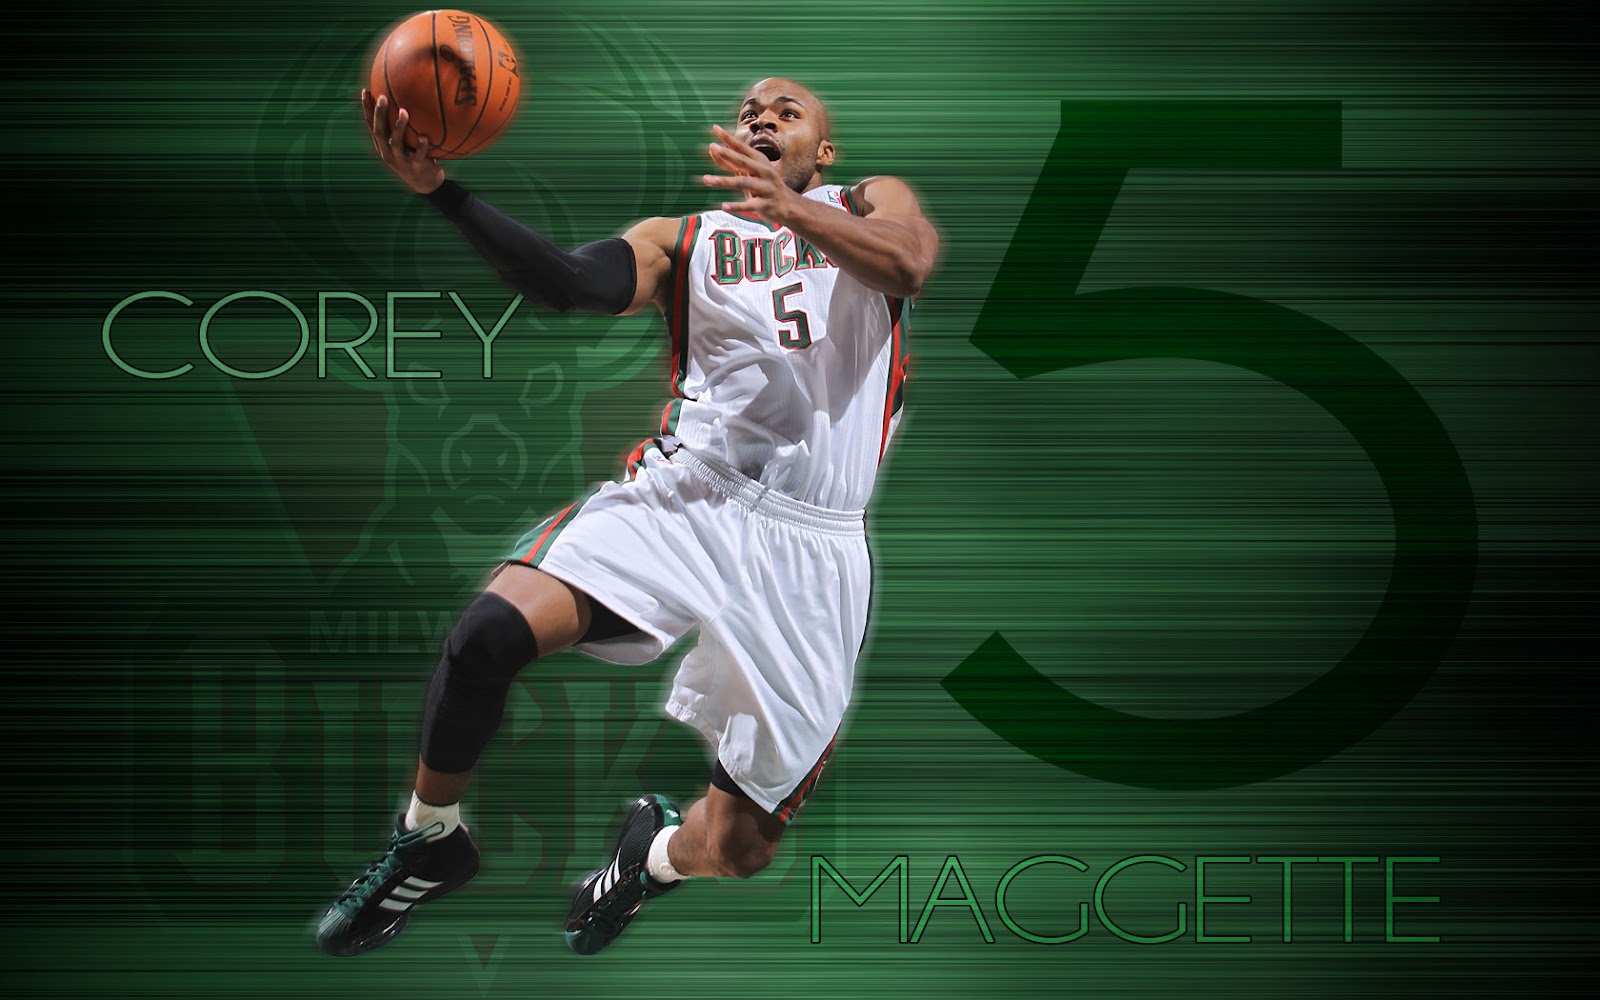 http://3.bp.blogspot.com/-eEhH8C5relc/T9Y-caNheUI/AAAAAAAADeo/cObGEJ8FUQQ/s1600/Corey+Maggette+Wallpapers+%25284%2529.jpg